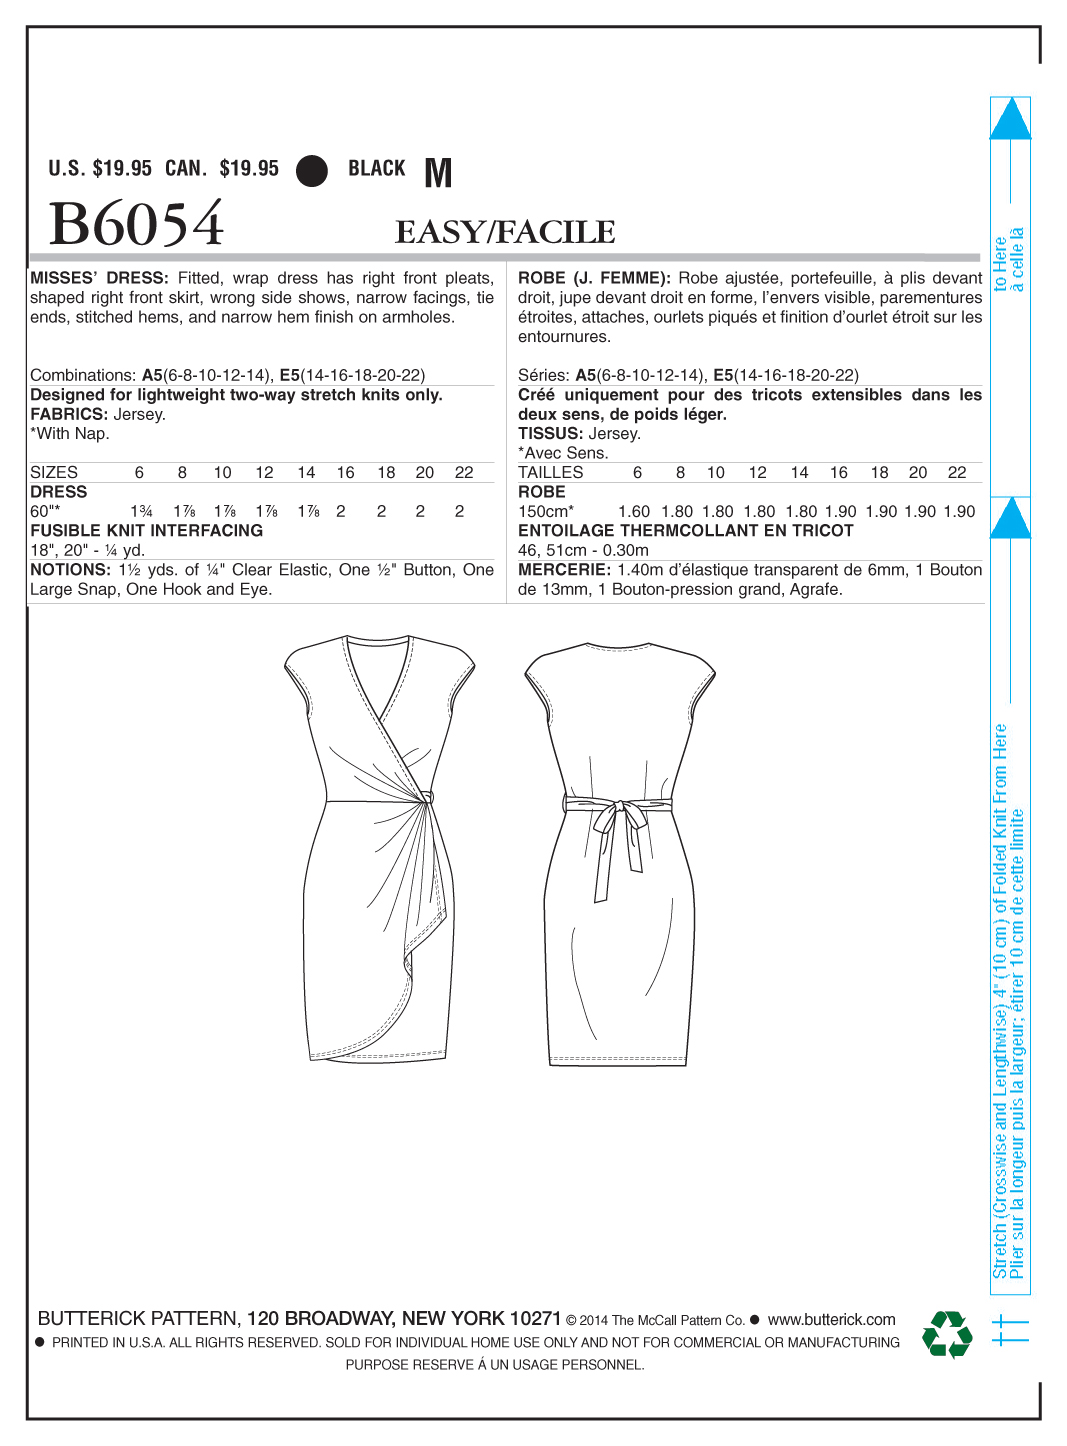 Butterick Misses Dress-B6054